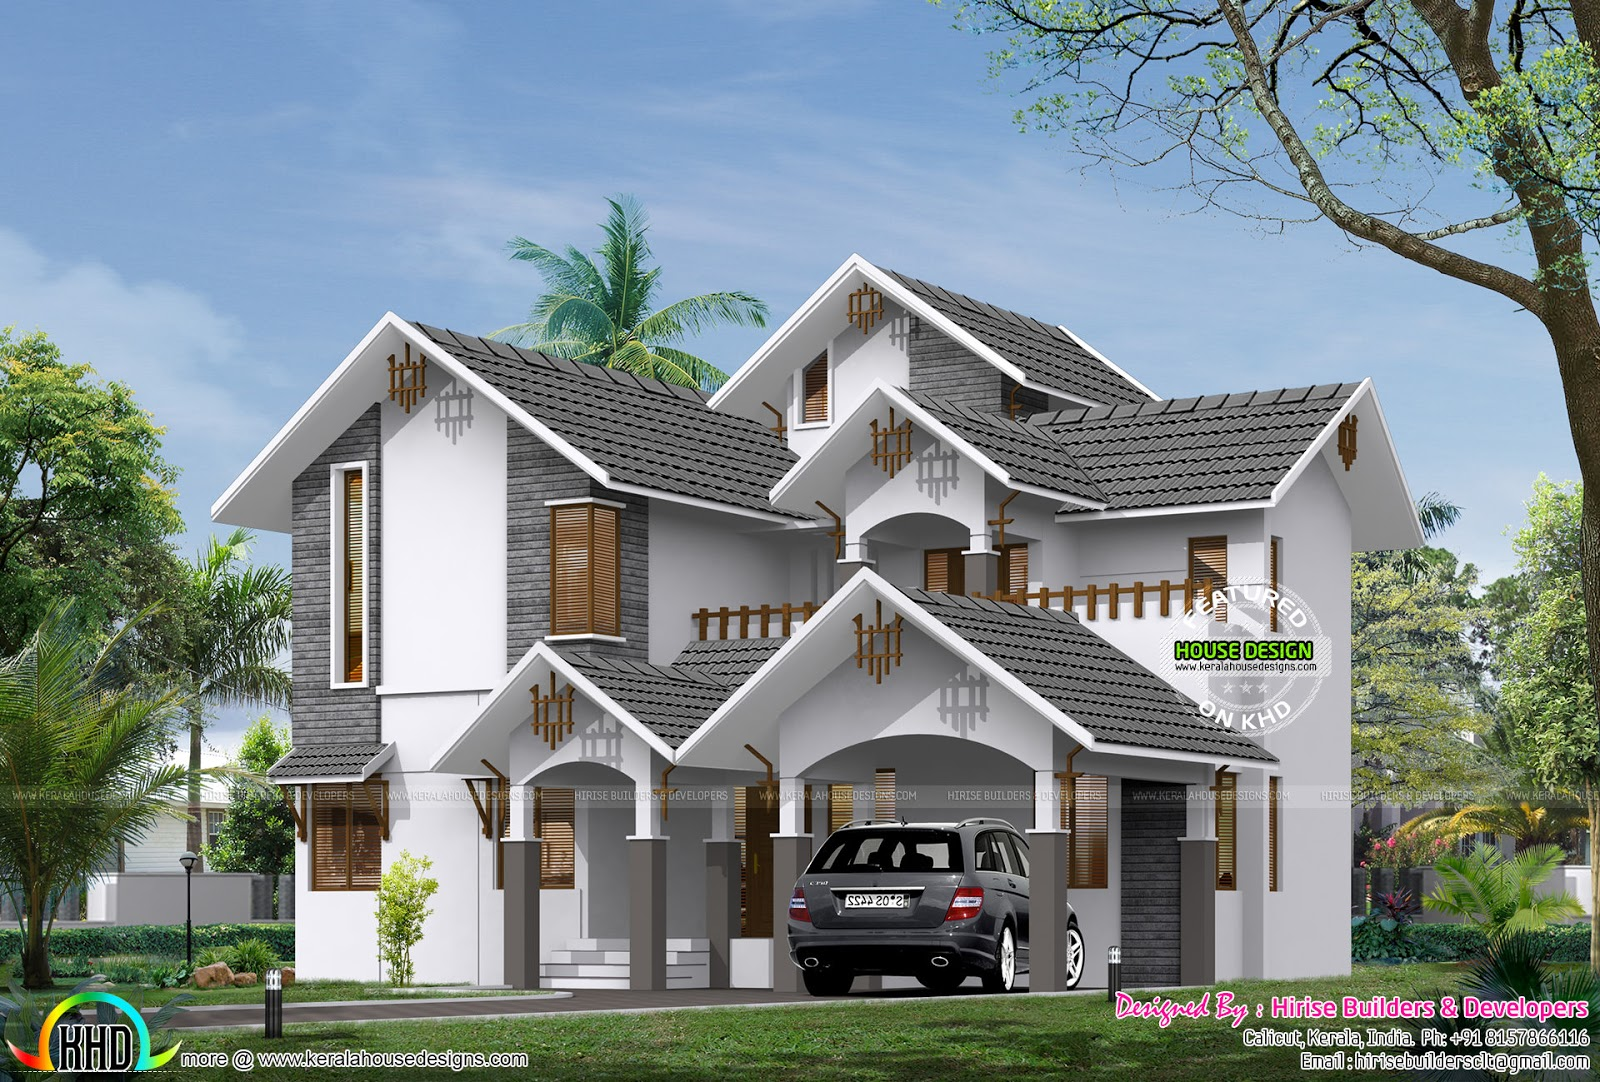 House design hilly area - 4 Bedroom Sloping Roof Home Plan In 269 Sqm